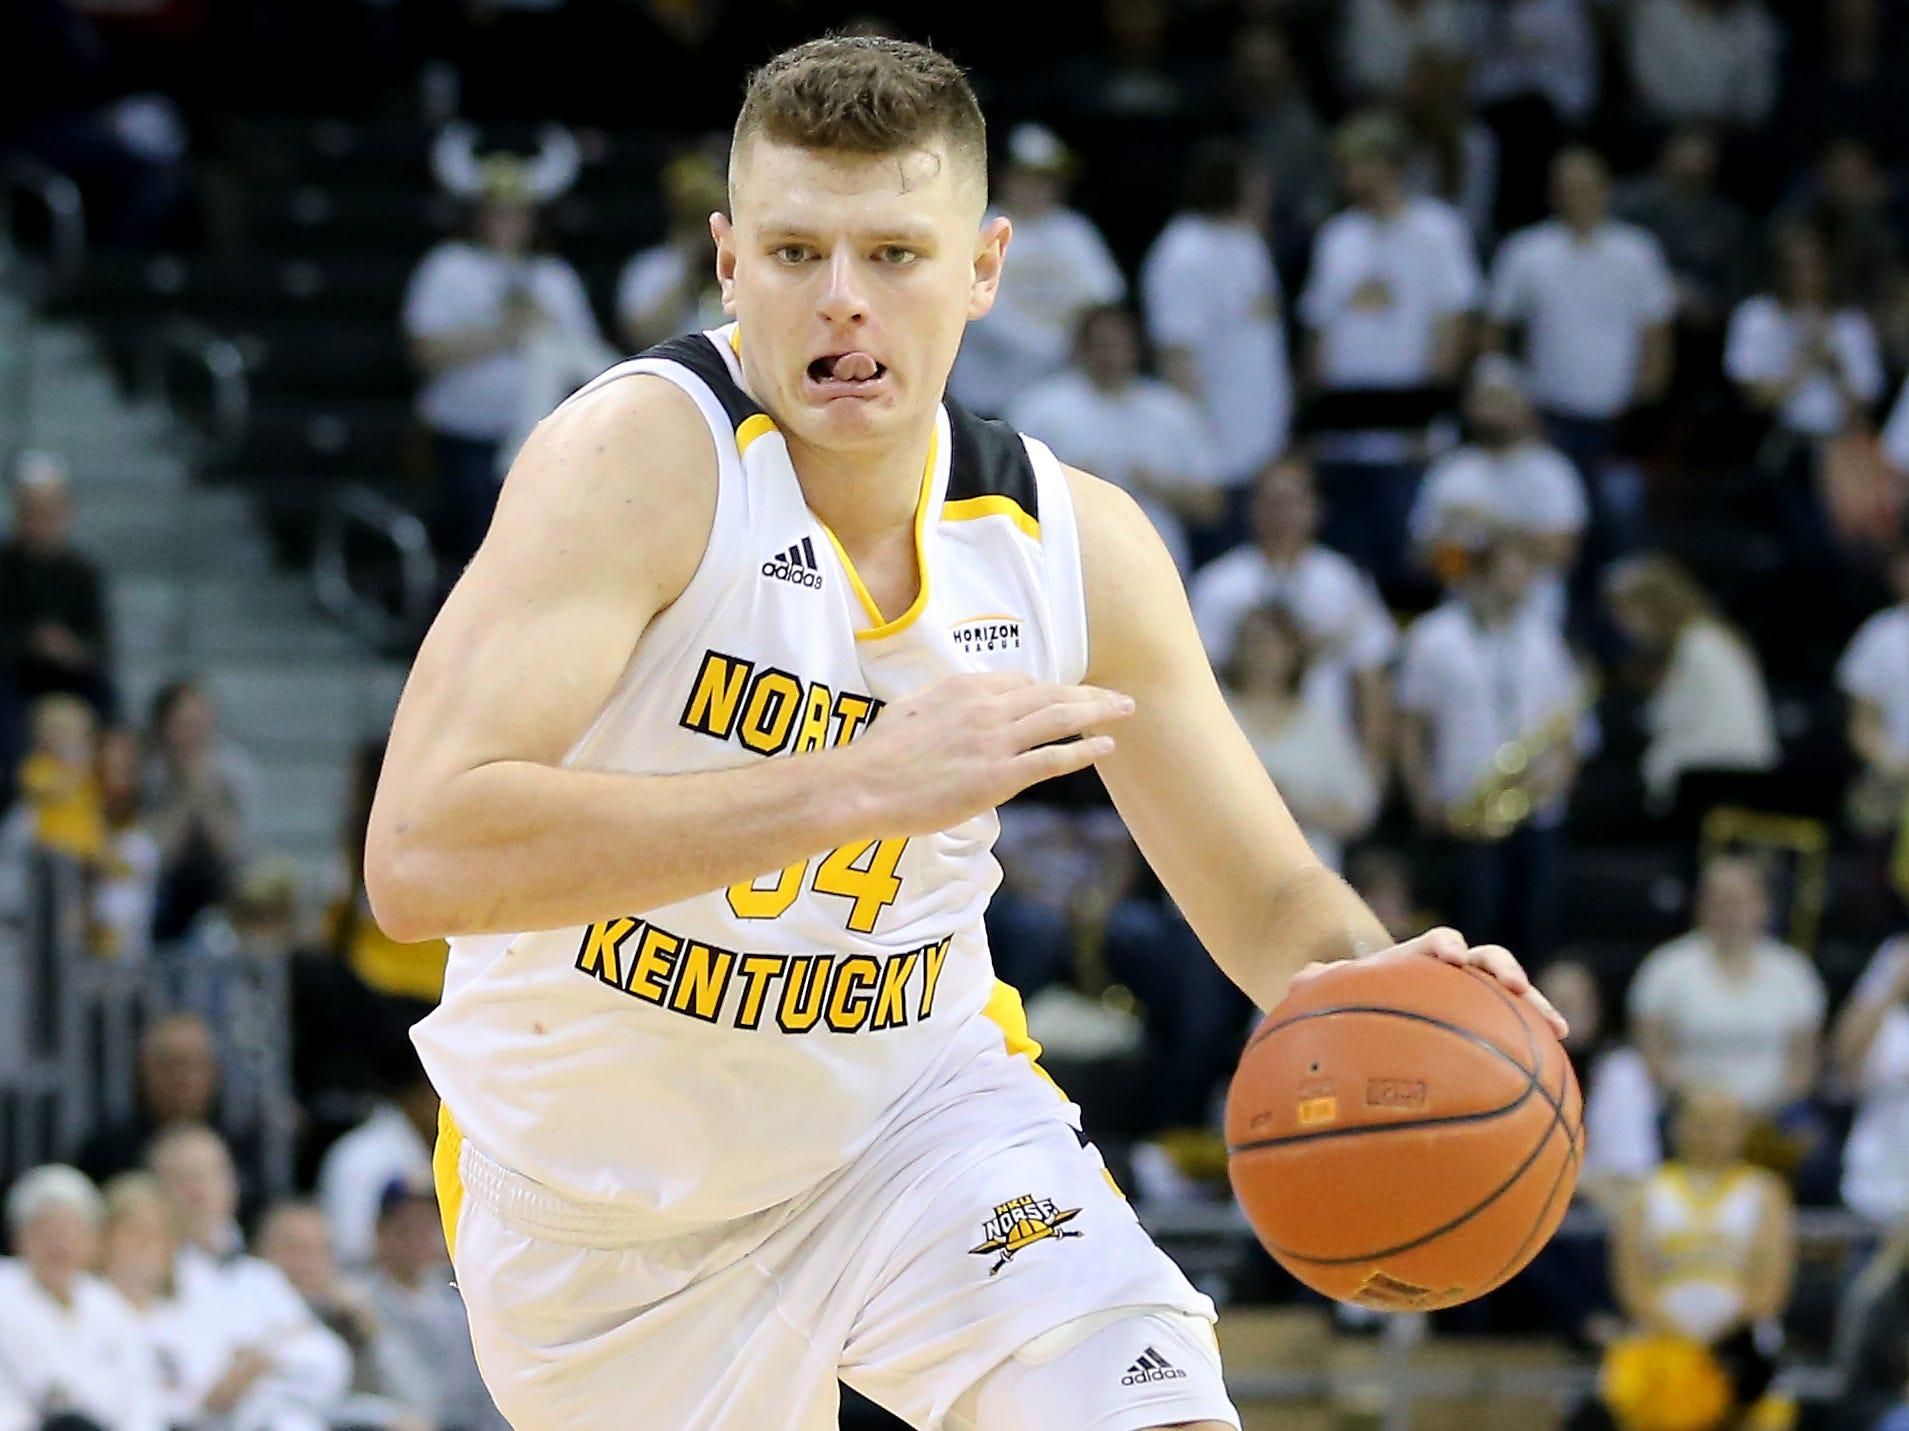 Northern Kentucky Norse forward Drew McDonald (34) drives to the basket in the second half of an NCAA basketball game against the Wright State Raiders, Friday, Jan. 11, 2019, at BB&T Arena in Highland Heights, Ky.